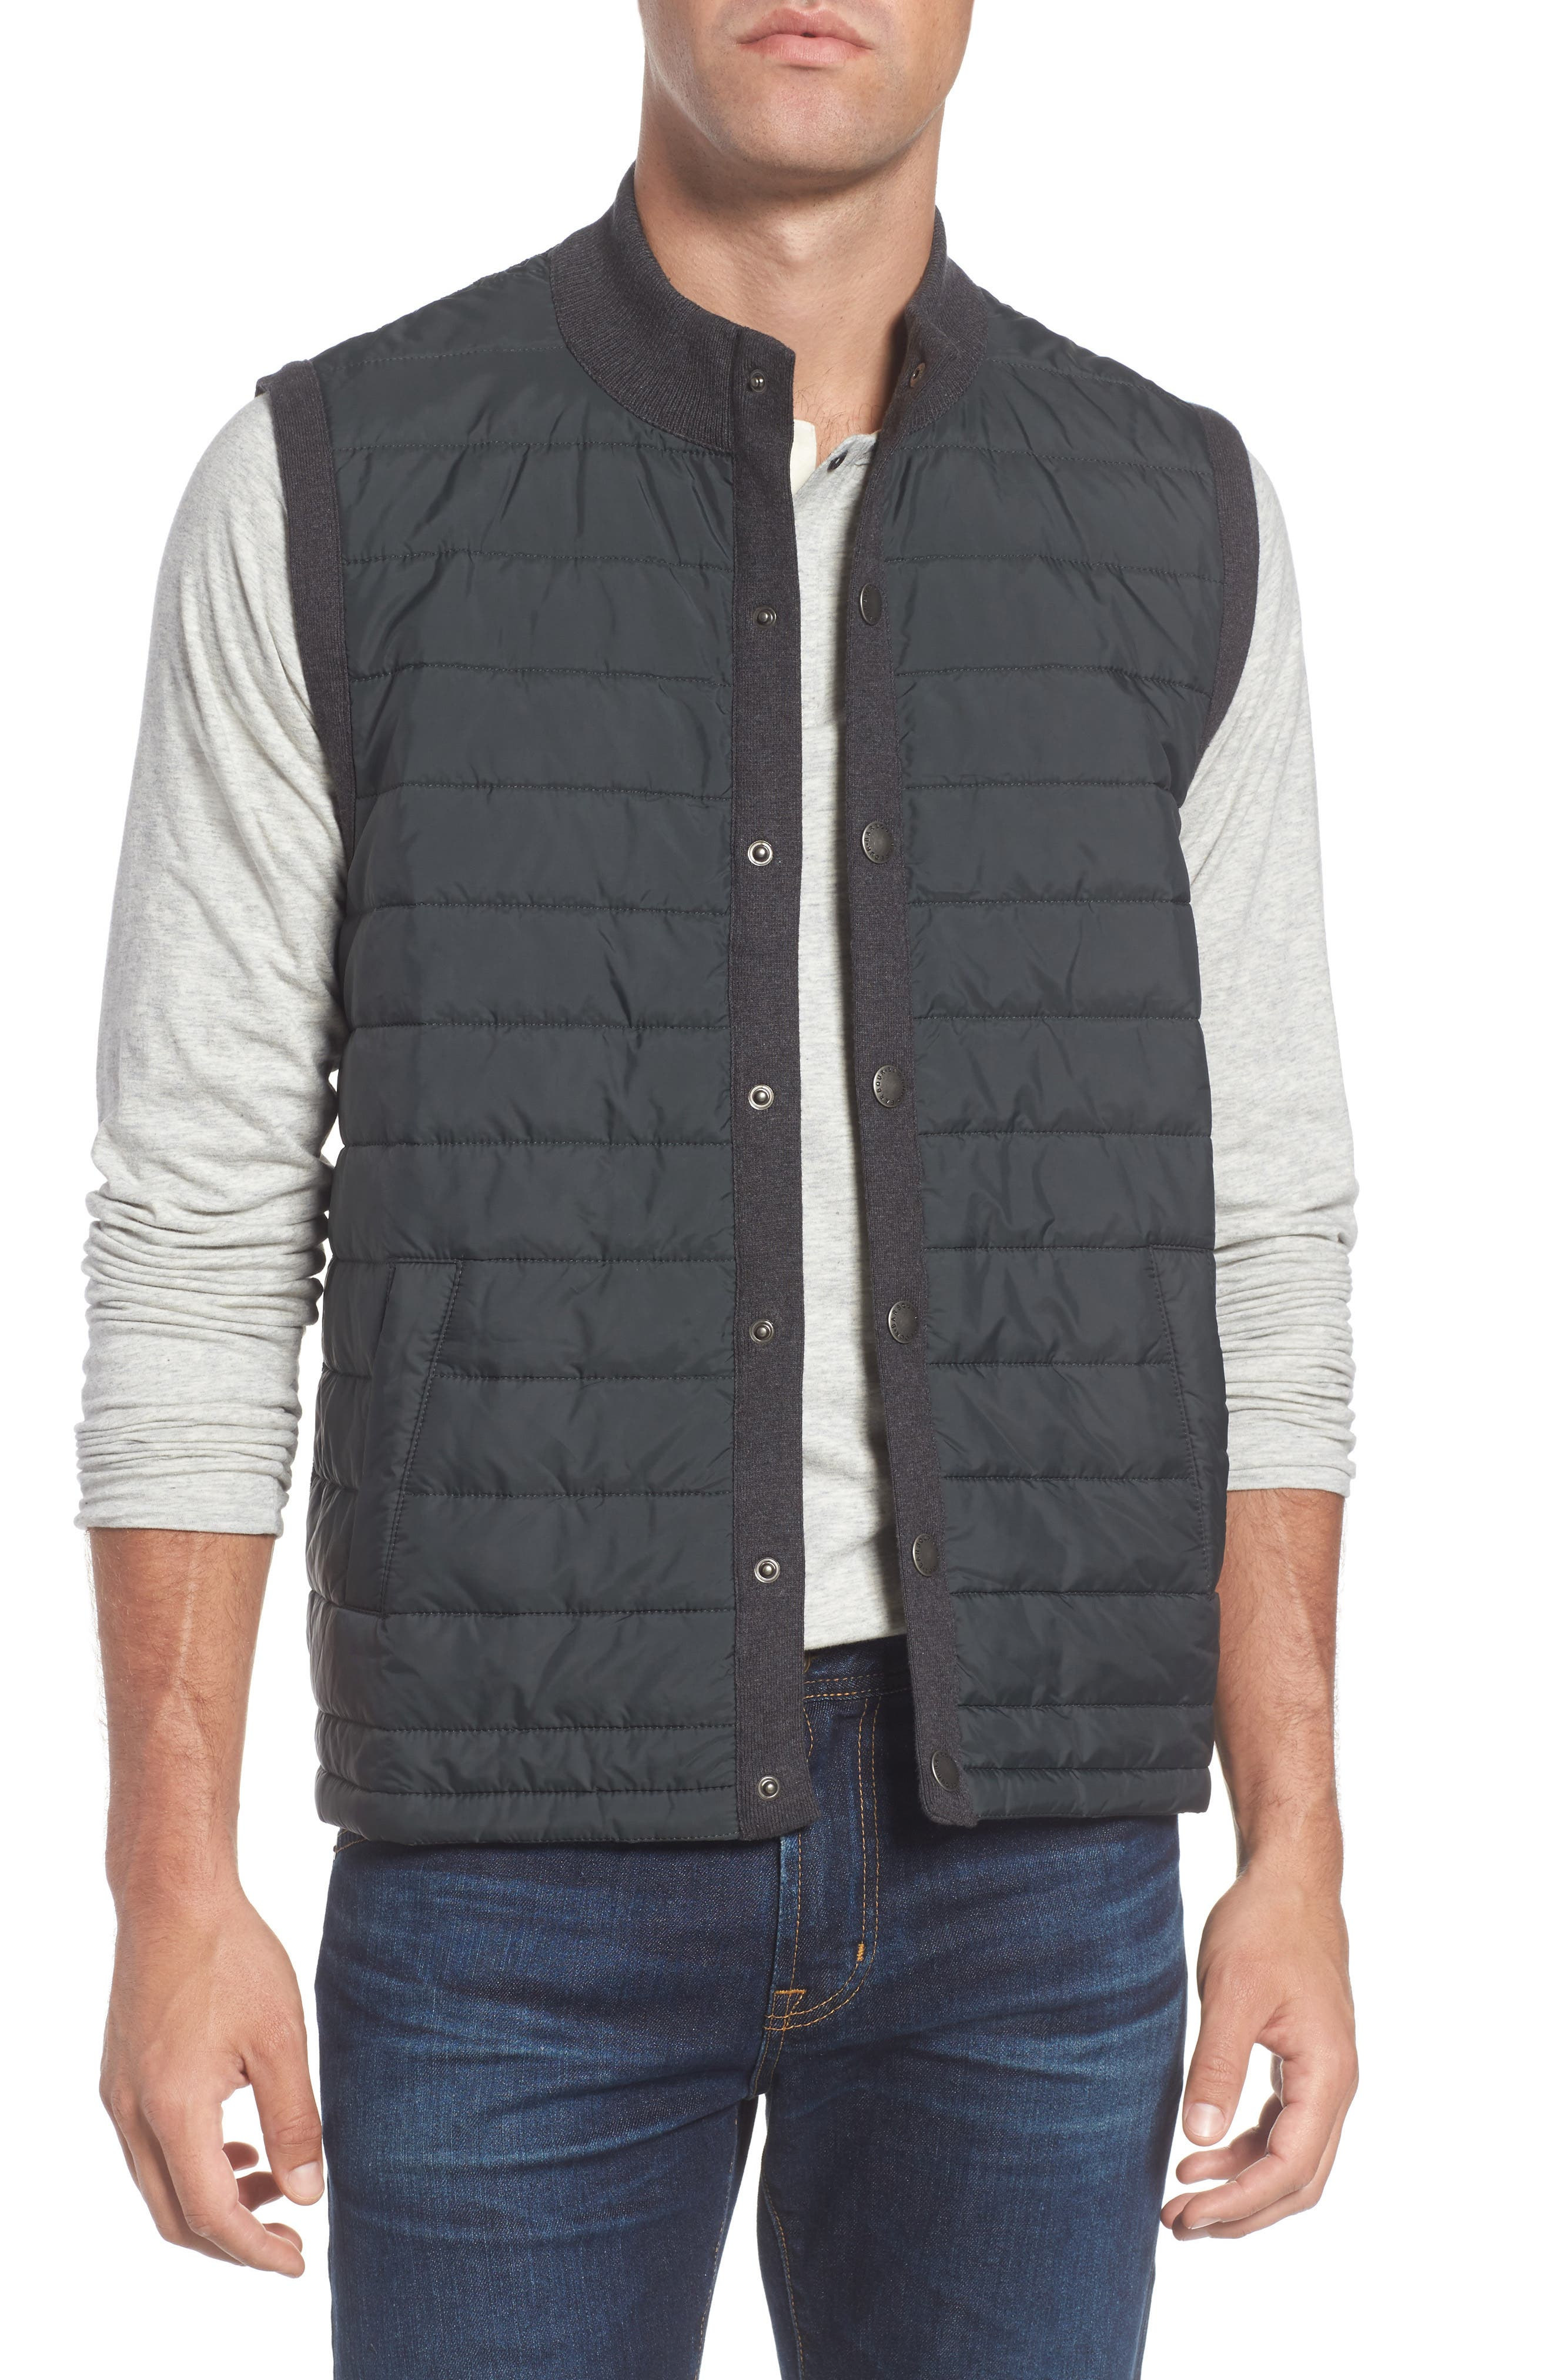 'Essential' Tailored Fit Mixed Media Vest,                         Main,                         color, Charcoal